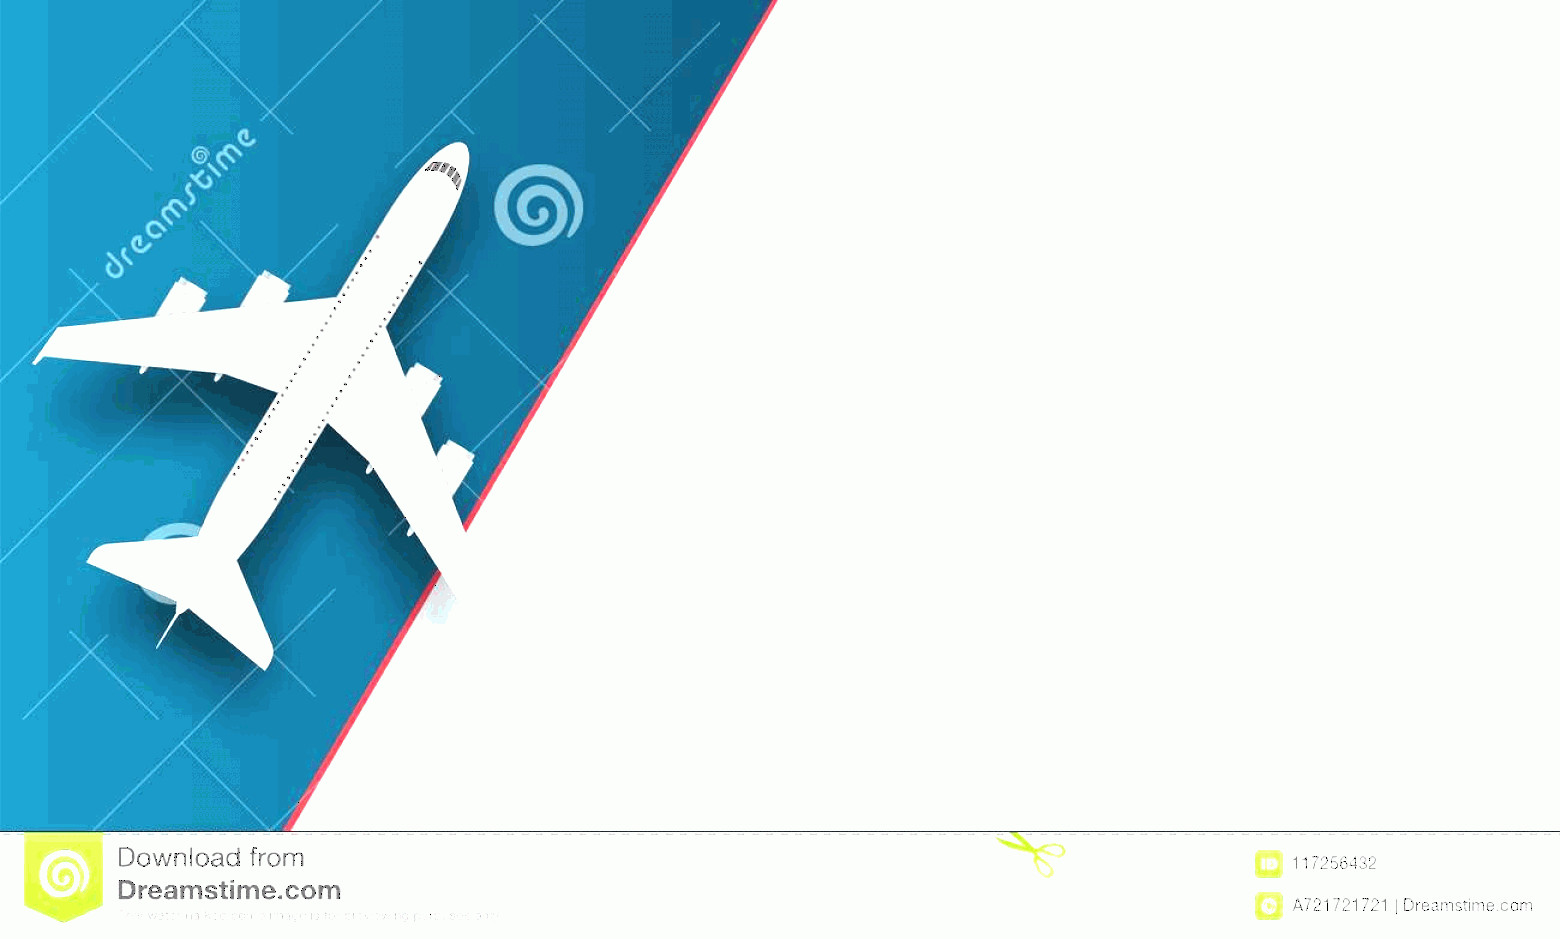 Aviation Vector Designs: Creative Vector Illustration Plane Isolated Colorful Background Top View Airplane Travel Art Design Summer Vacation Copy Image